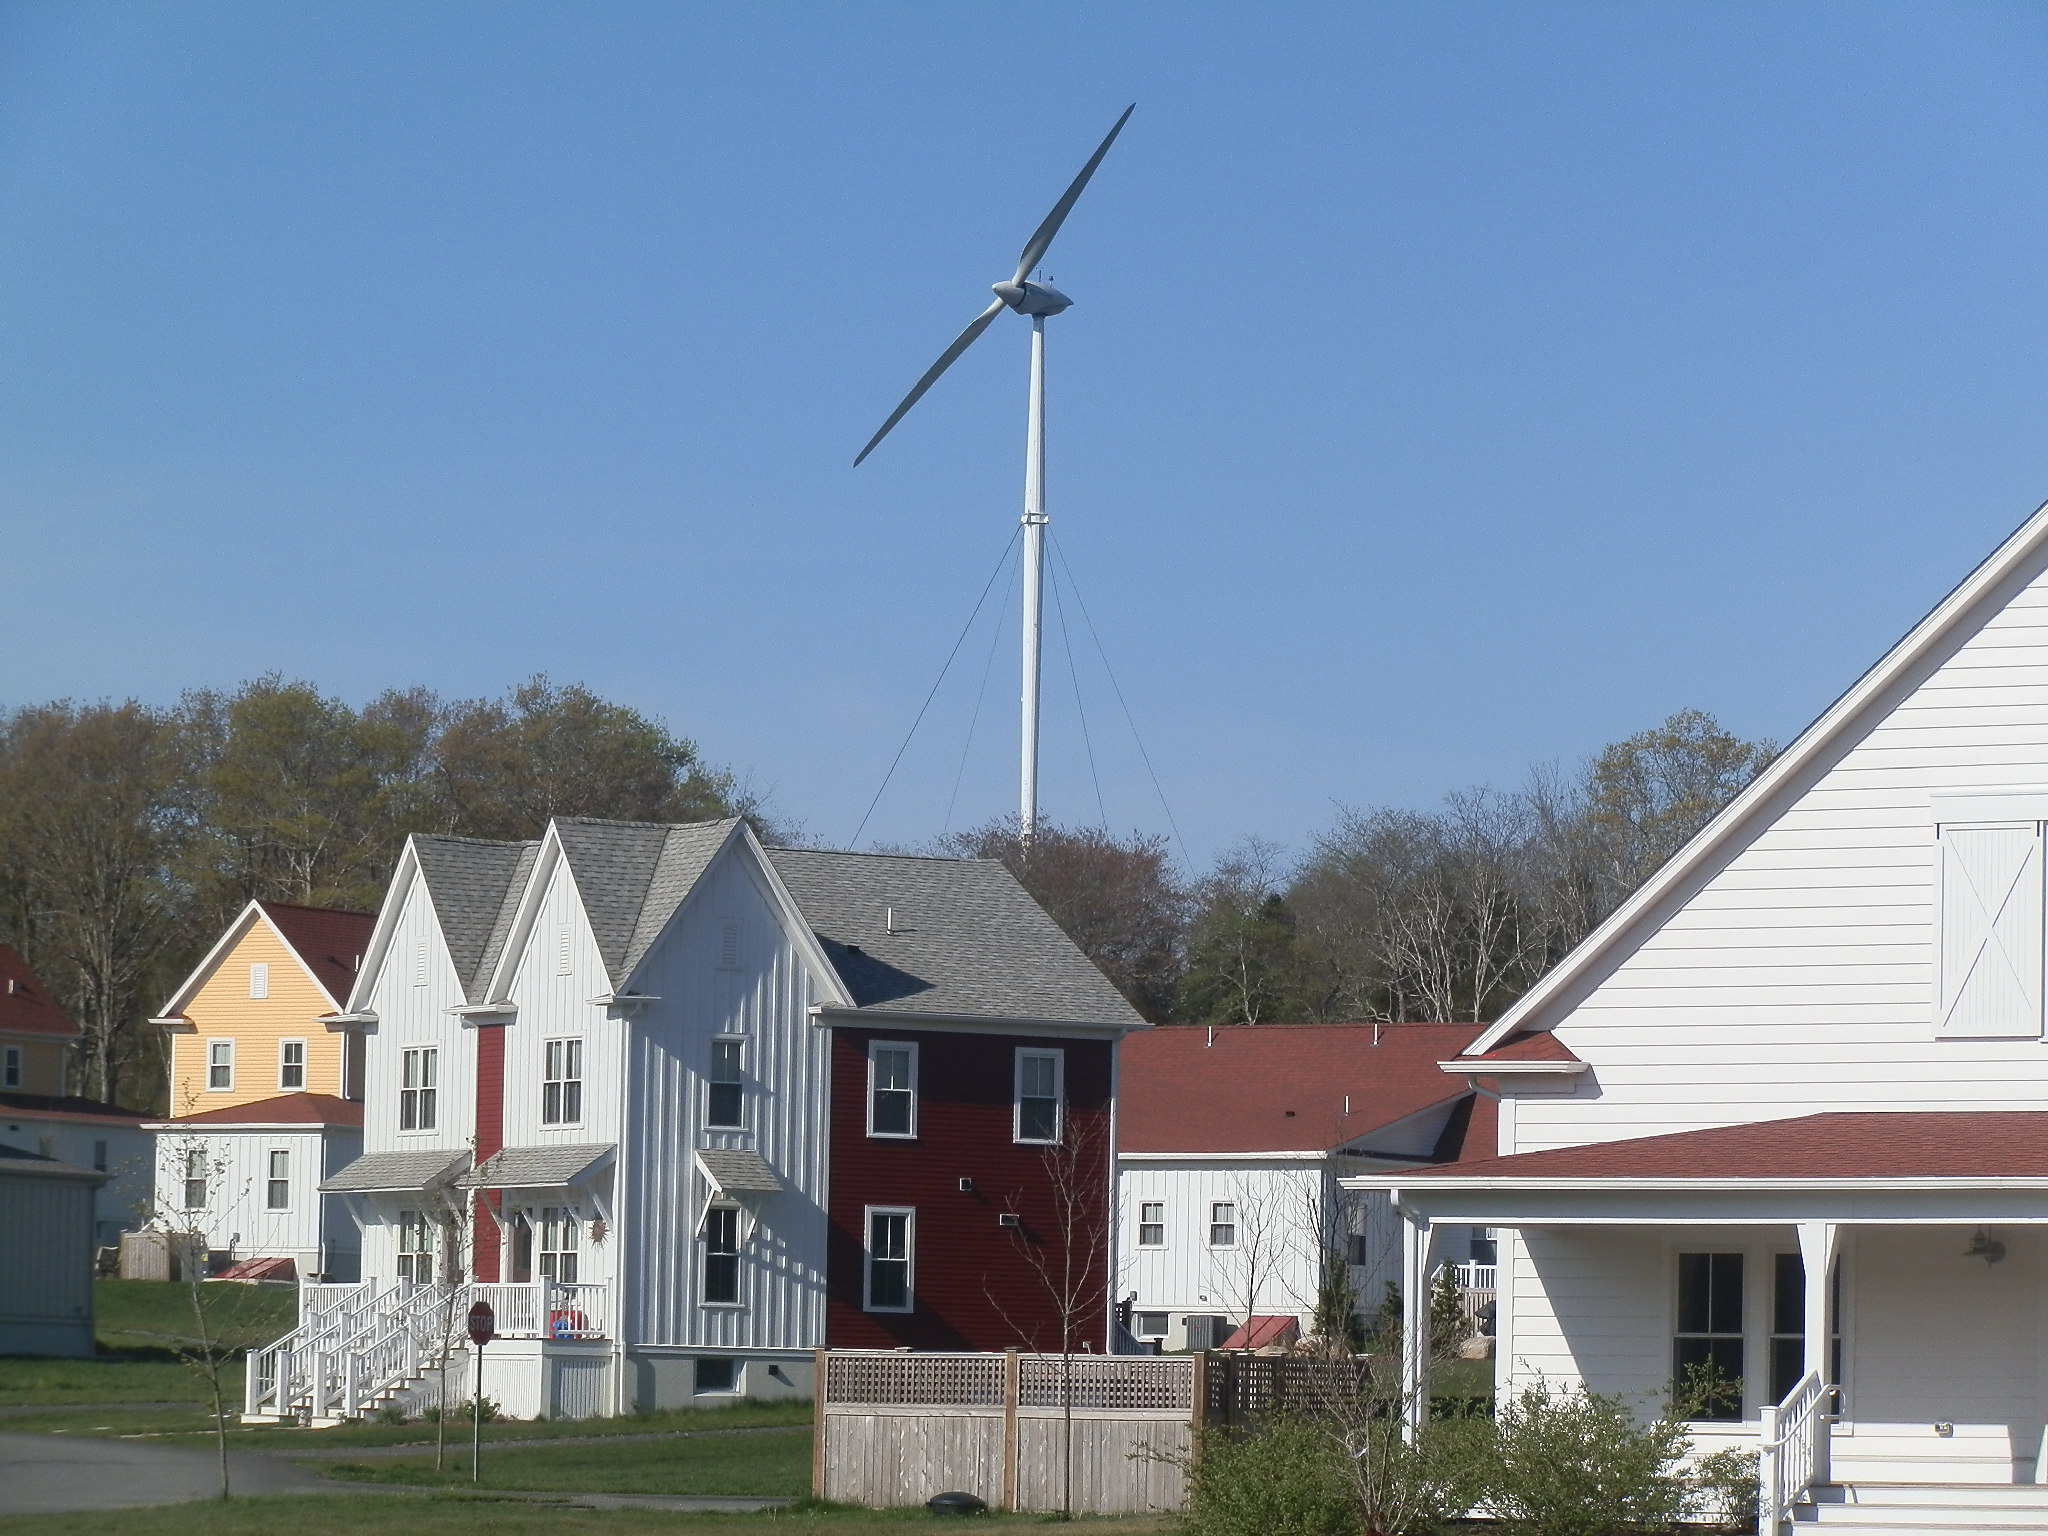 PNNL: News - Localized wind power blowing more near homes ... | 2048 x 1536 jpeg 1428kB